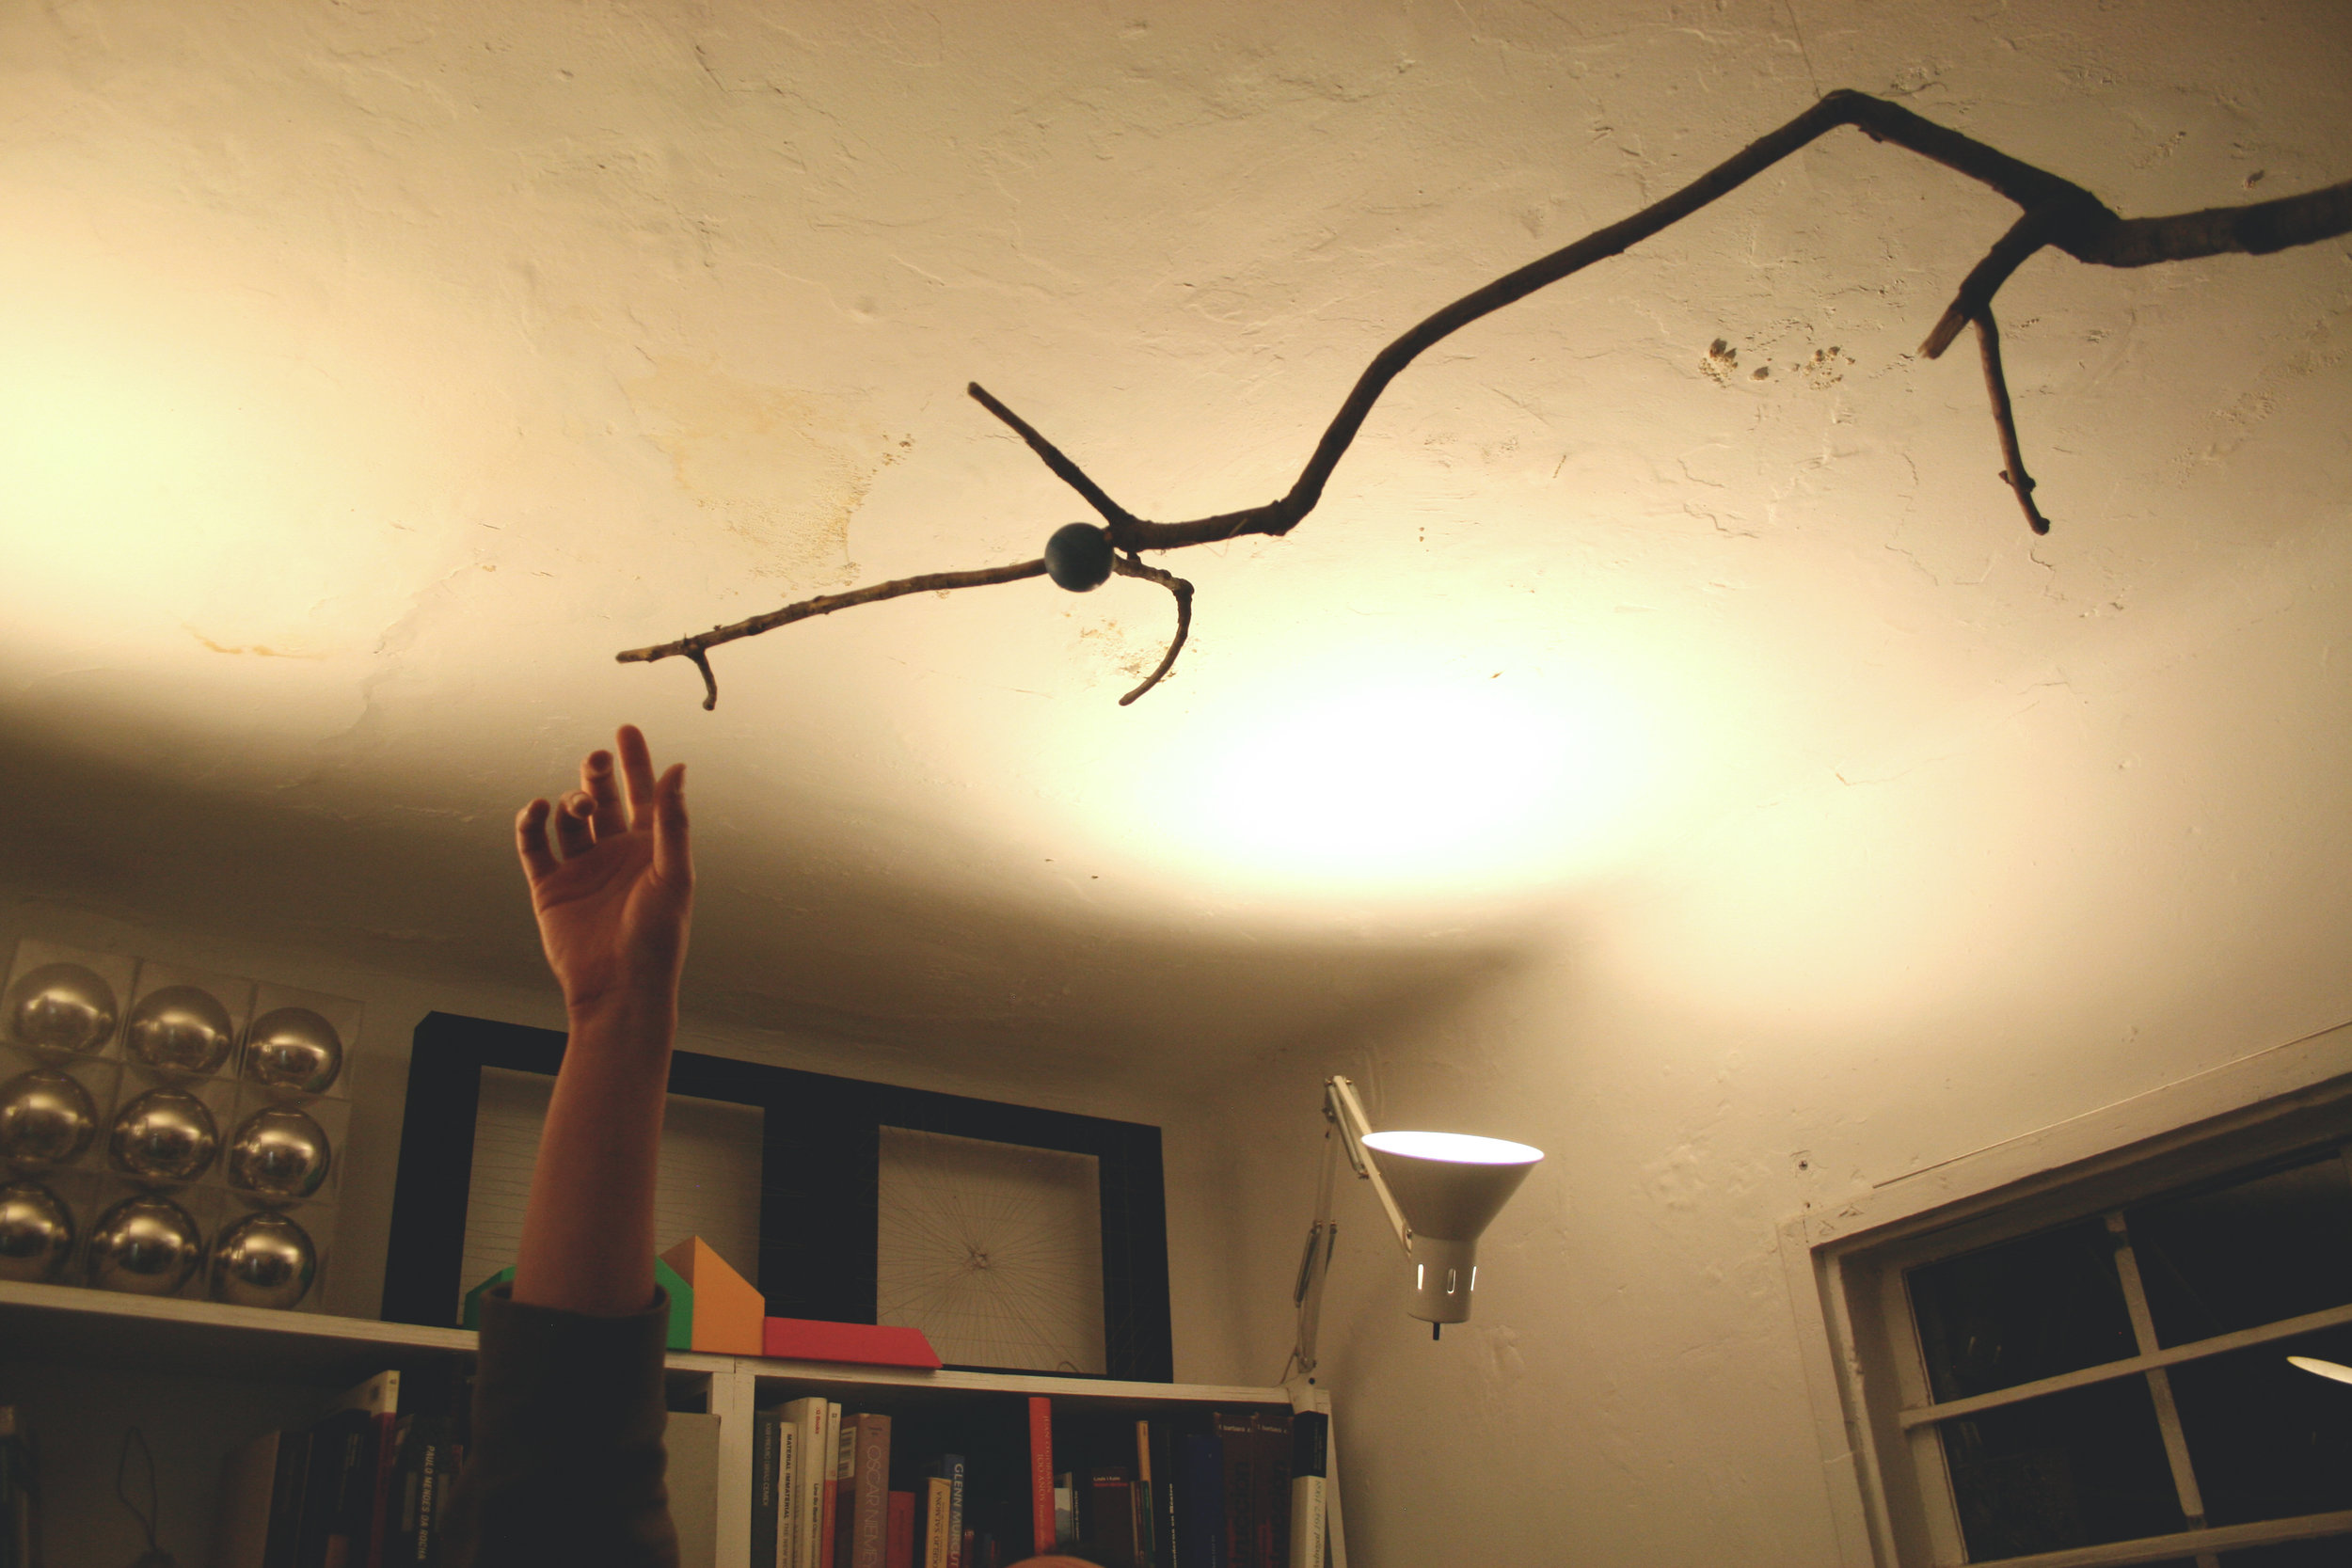 This is a hanging mobile made with a tree branch and a foam ball